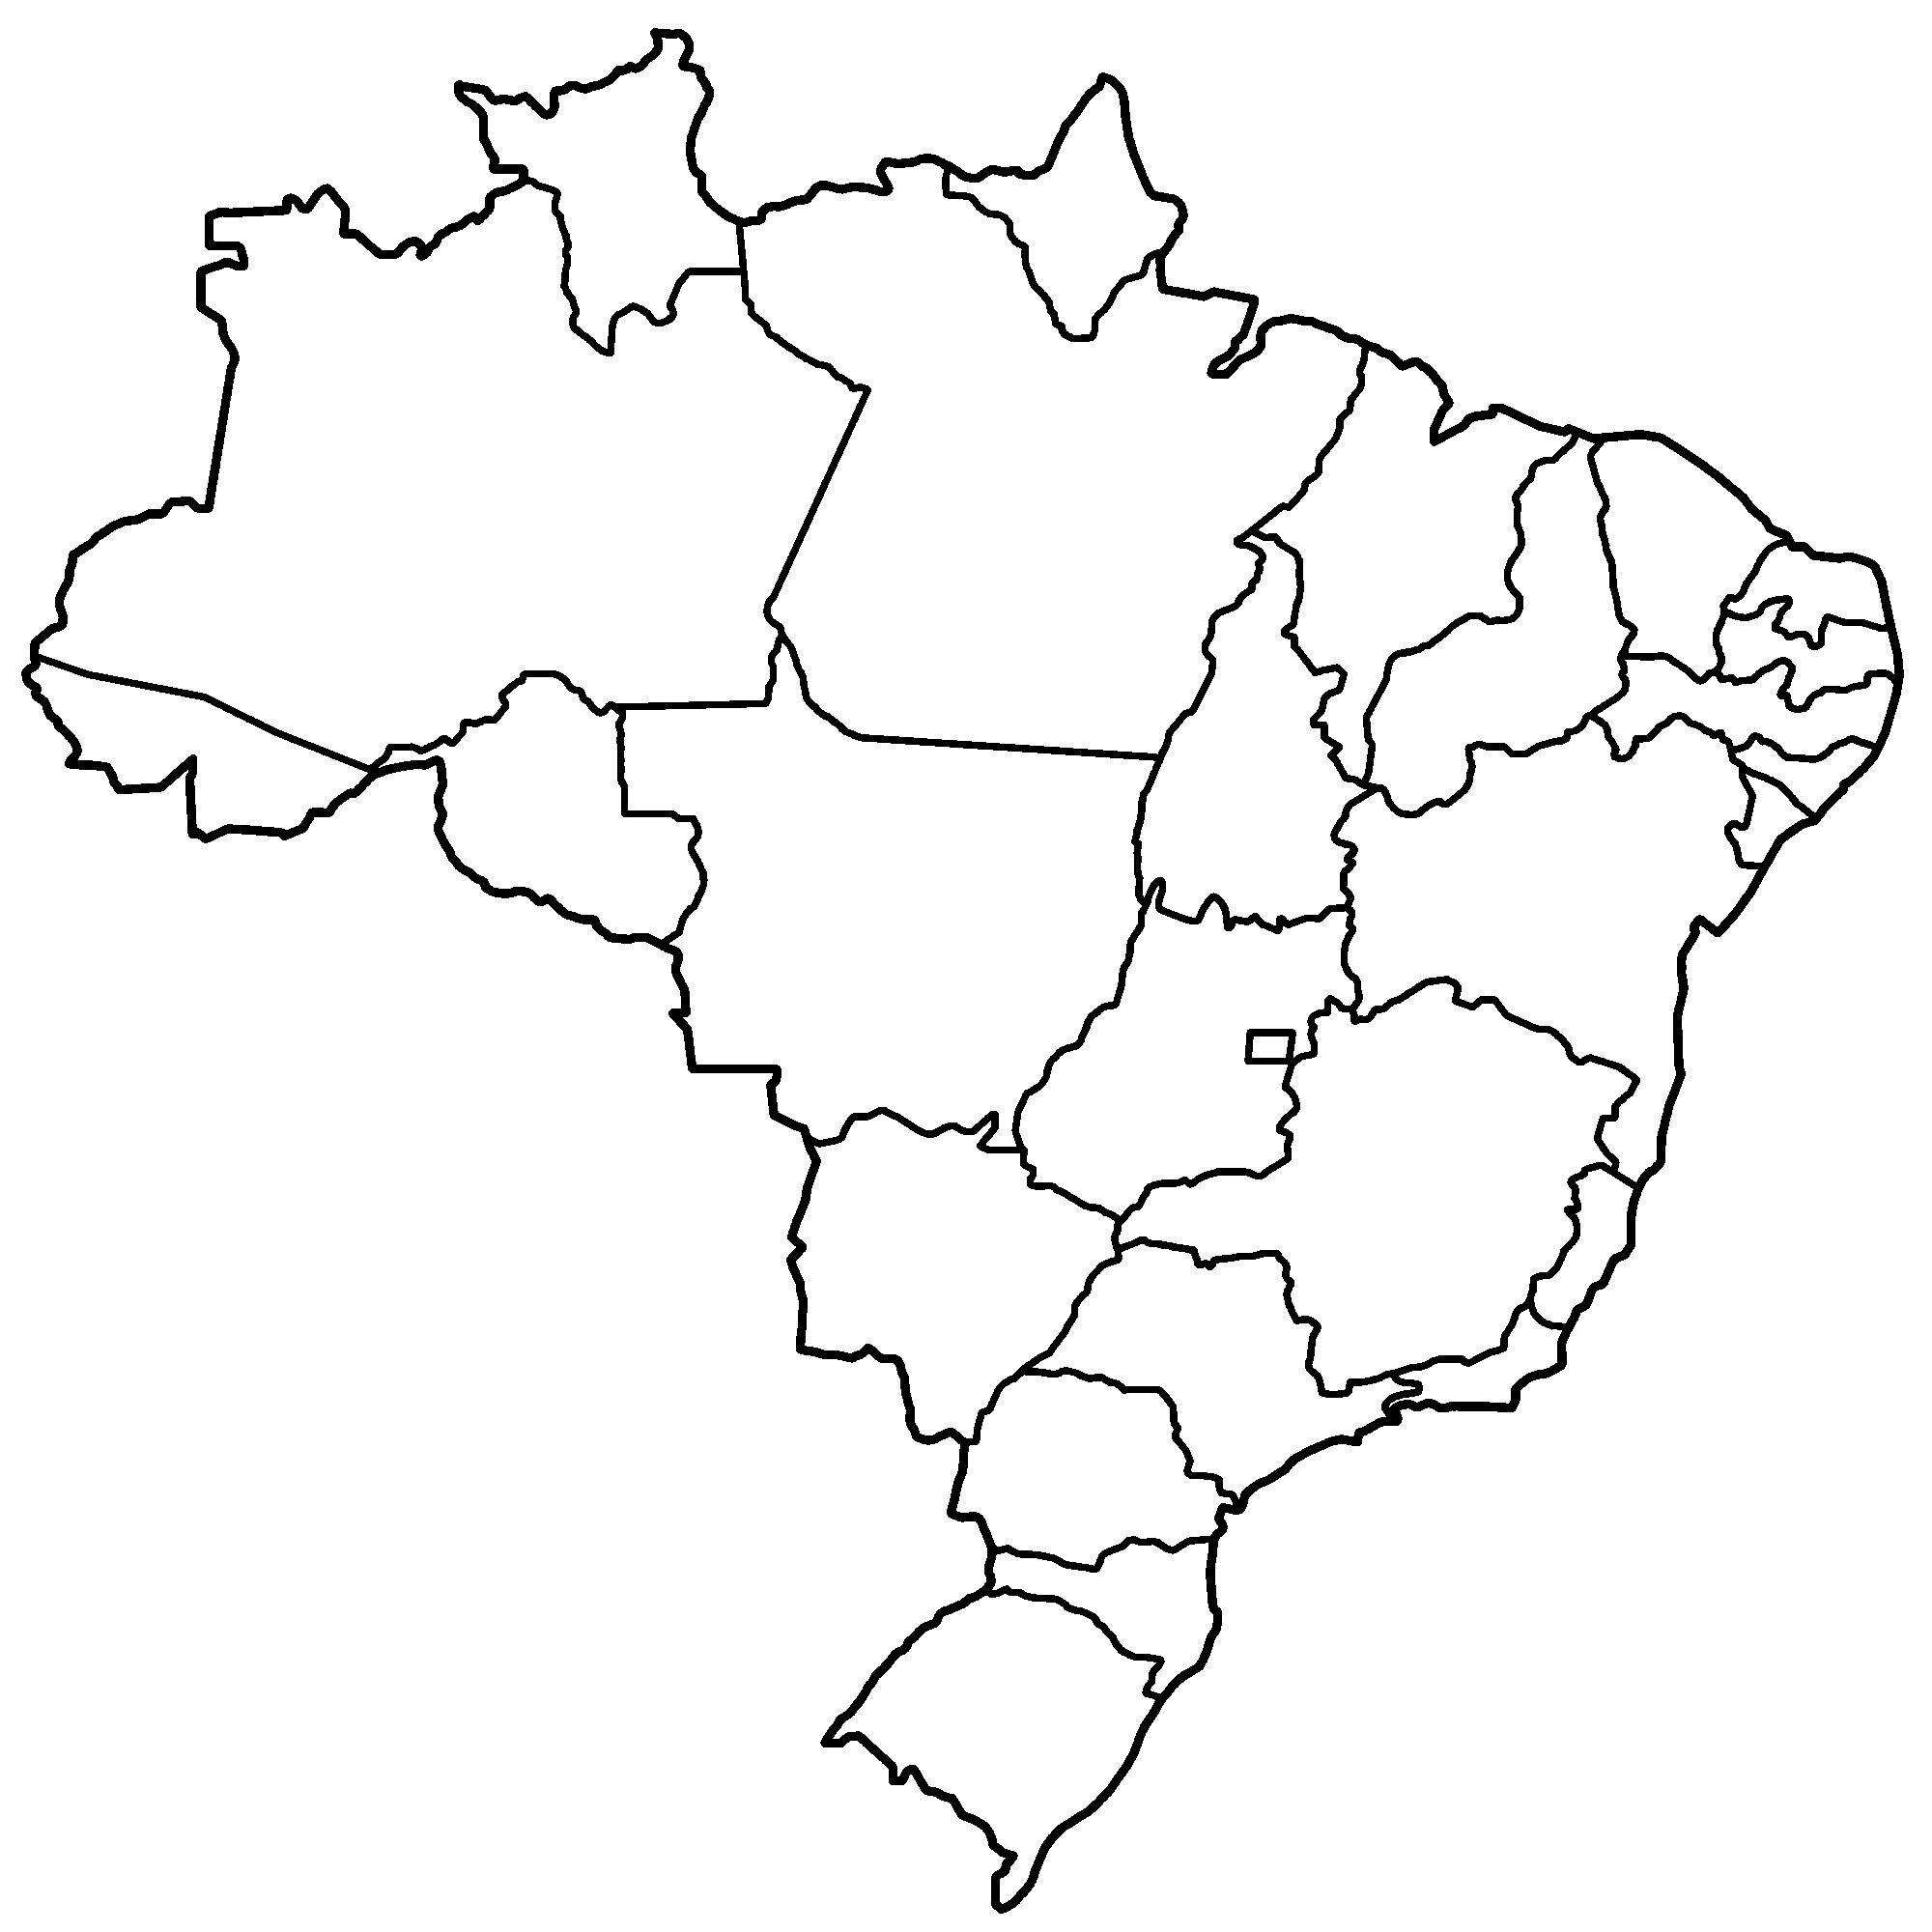 FileBrazil States Blankpng Wikimedia Commons - Brazil states map